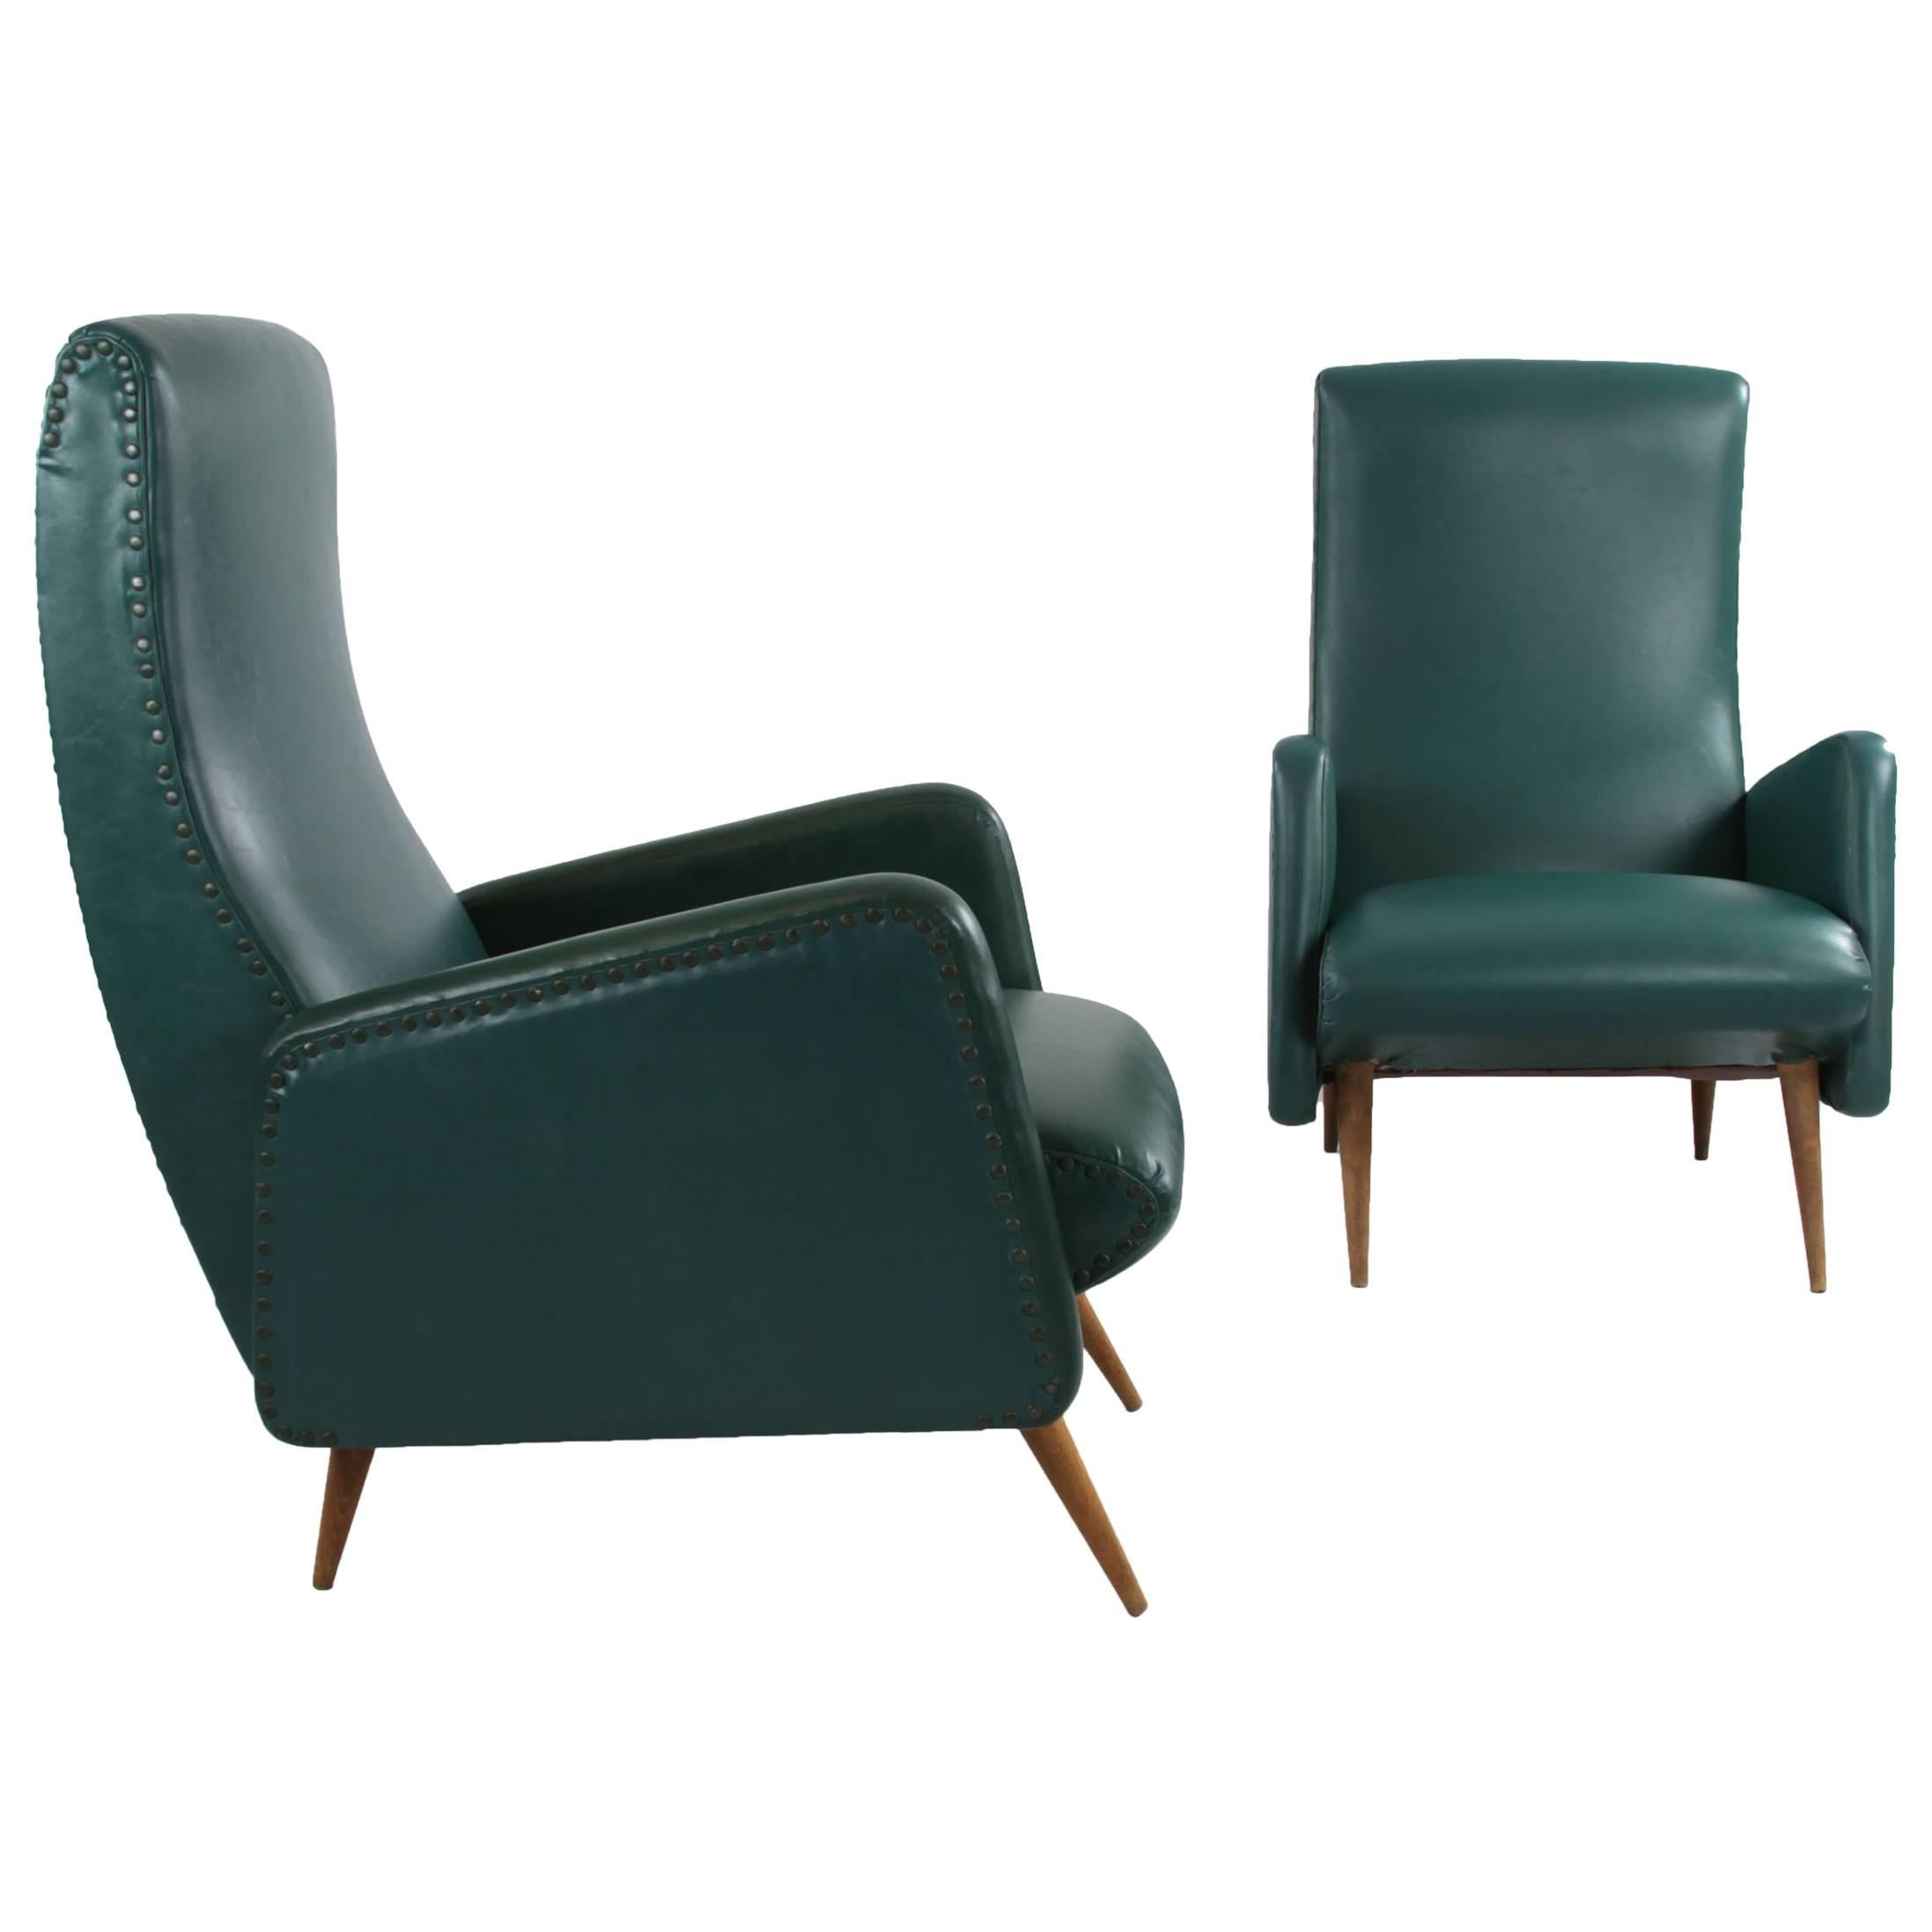 Pair of Italian Chairs in Original Green Imitation Leather Upholstery, 1950